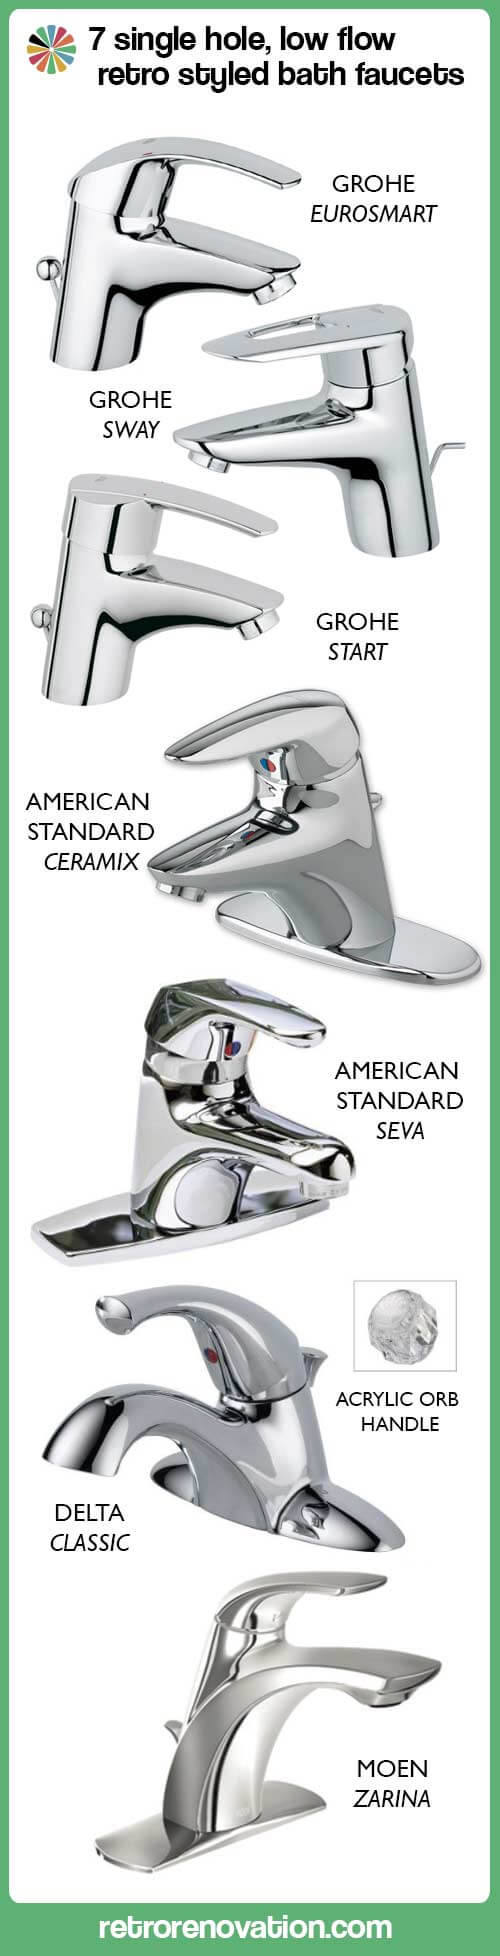 water-saving-single-hole-faucets